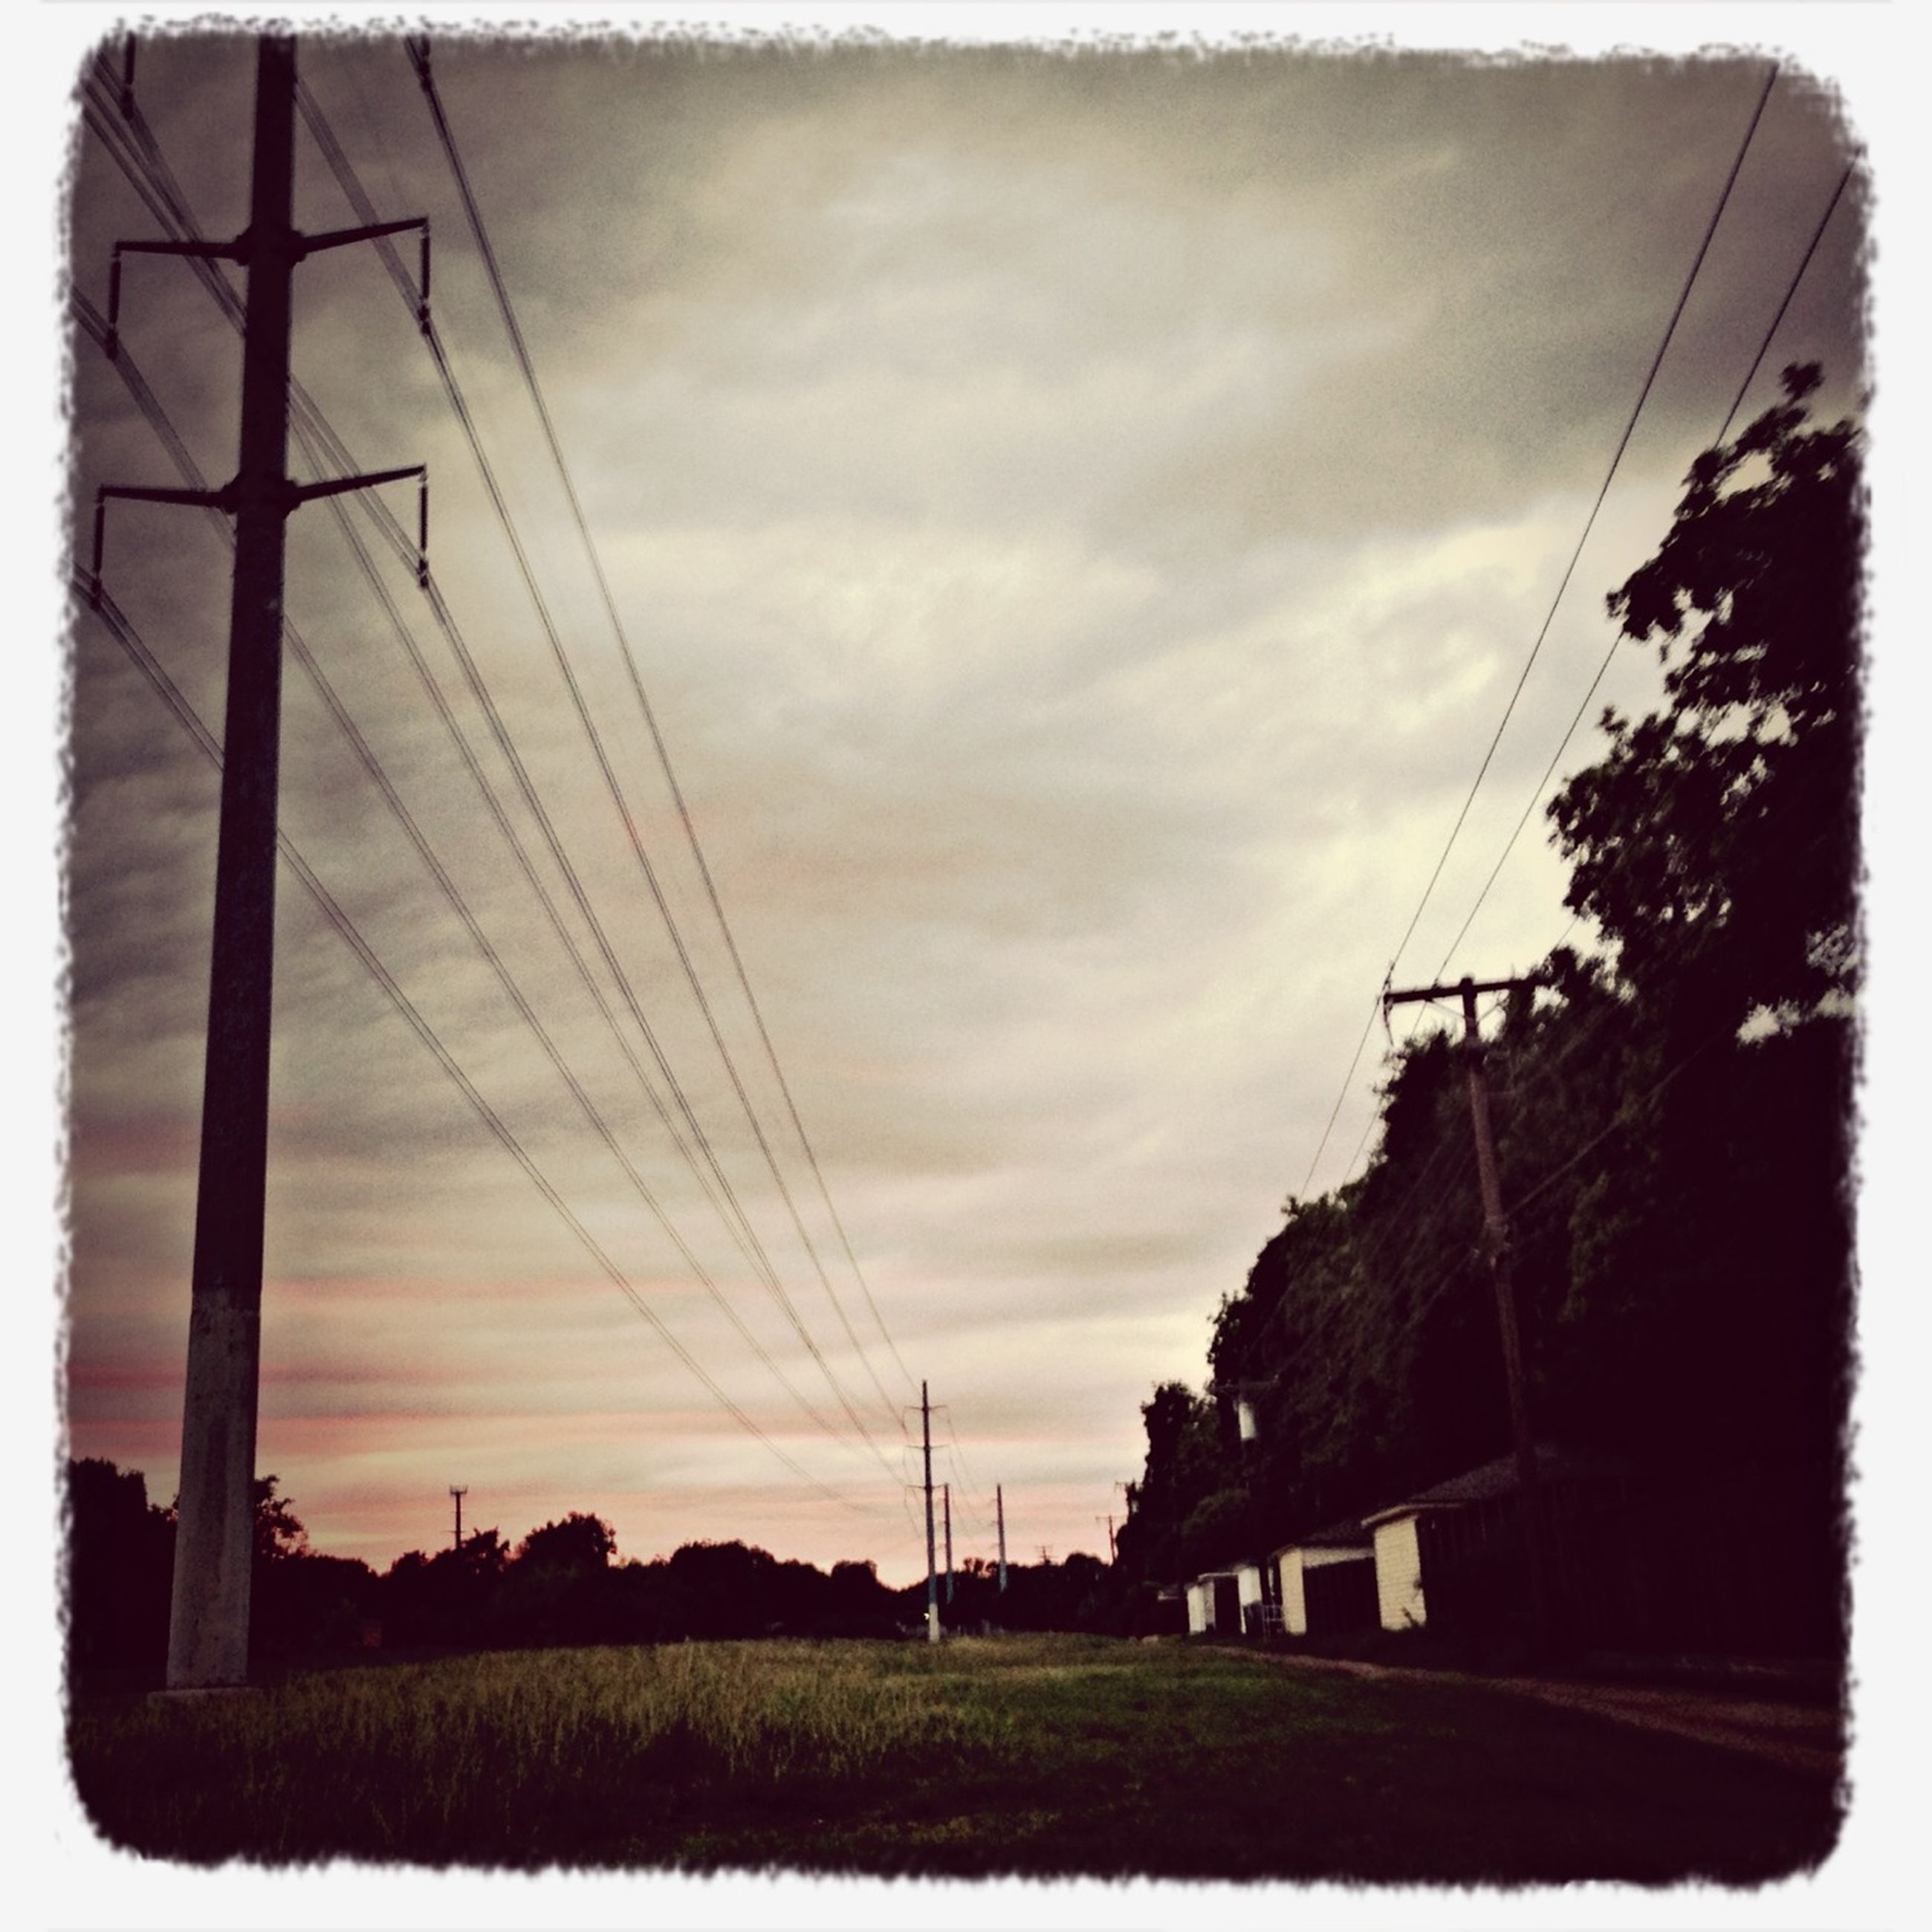 power line, electricity pylon, power supply, sky, transfer print, electricity, cable, connection, built structure, architecture, building exterior, auto post production filter, cloud - sky, fuel and power generation, power cable, sunset, house, cloud, low angle view, cloudy